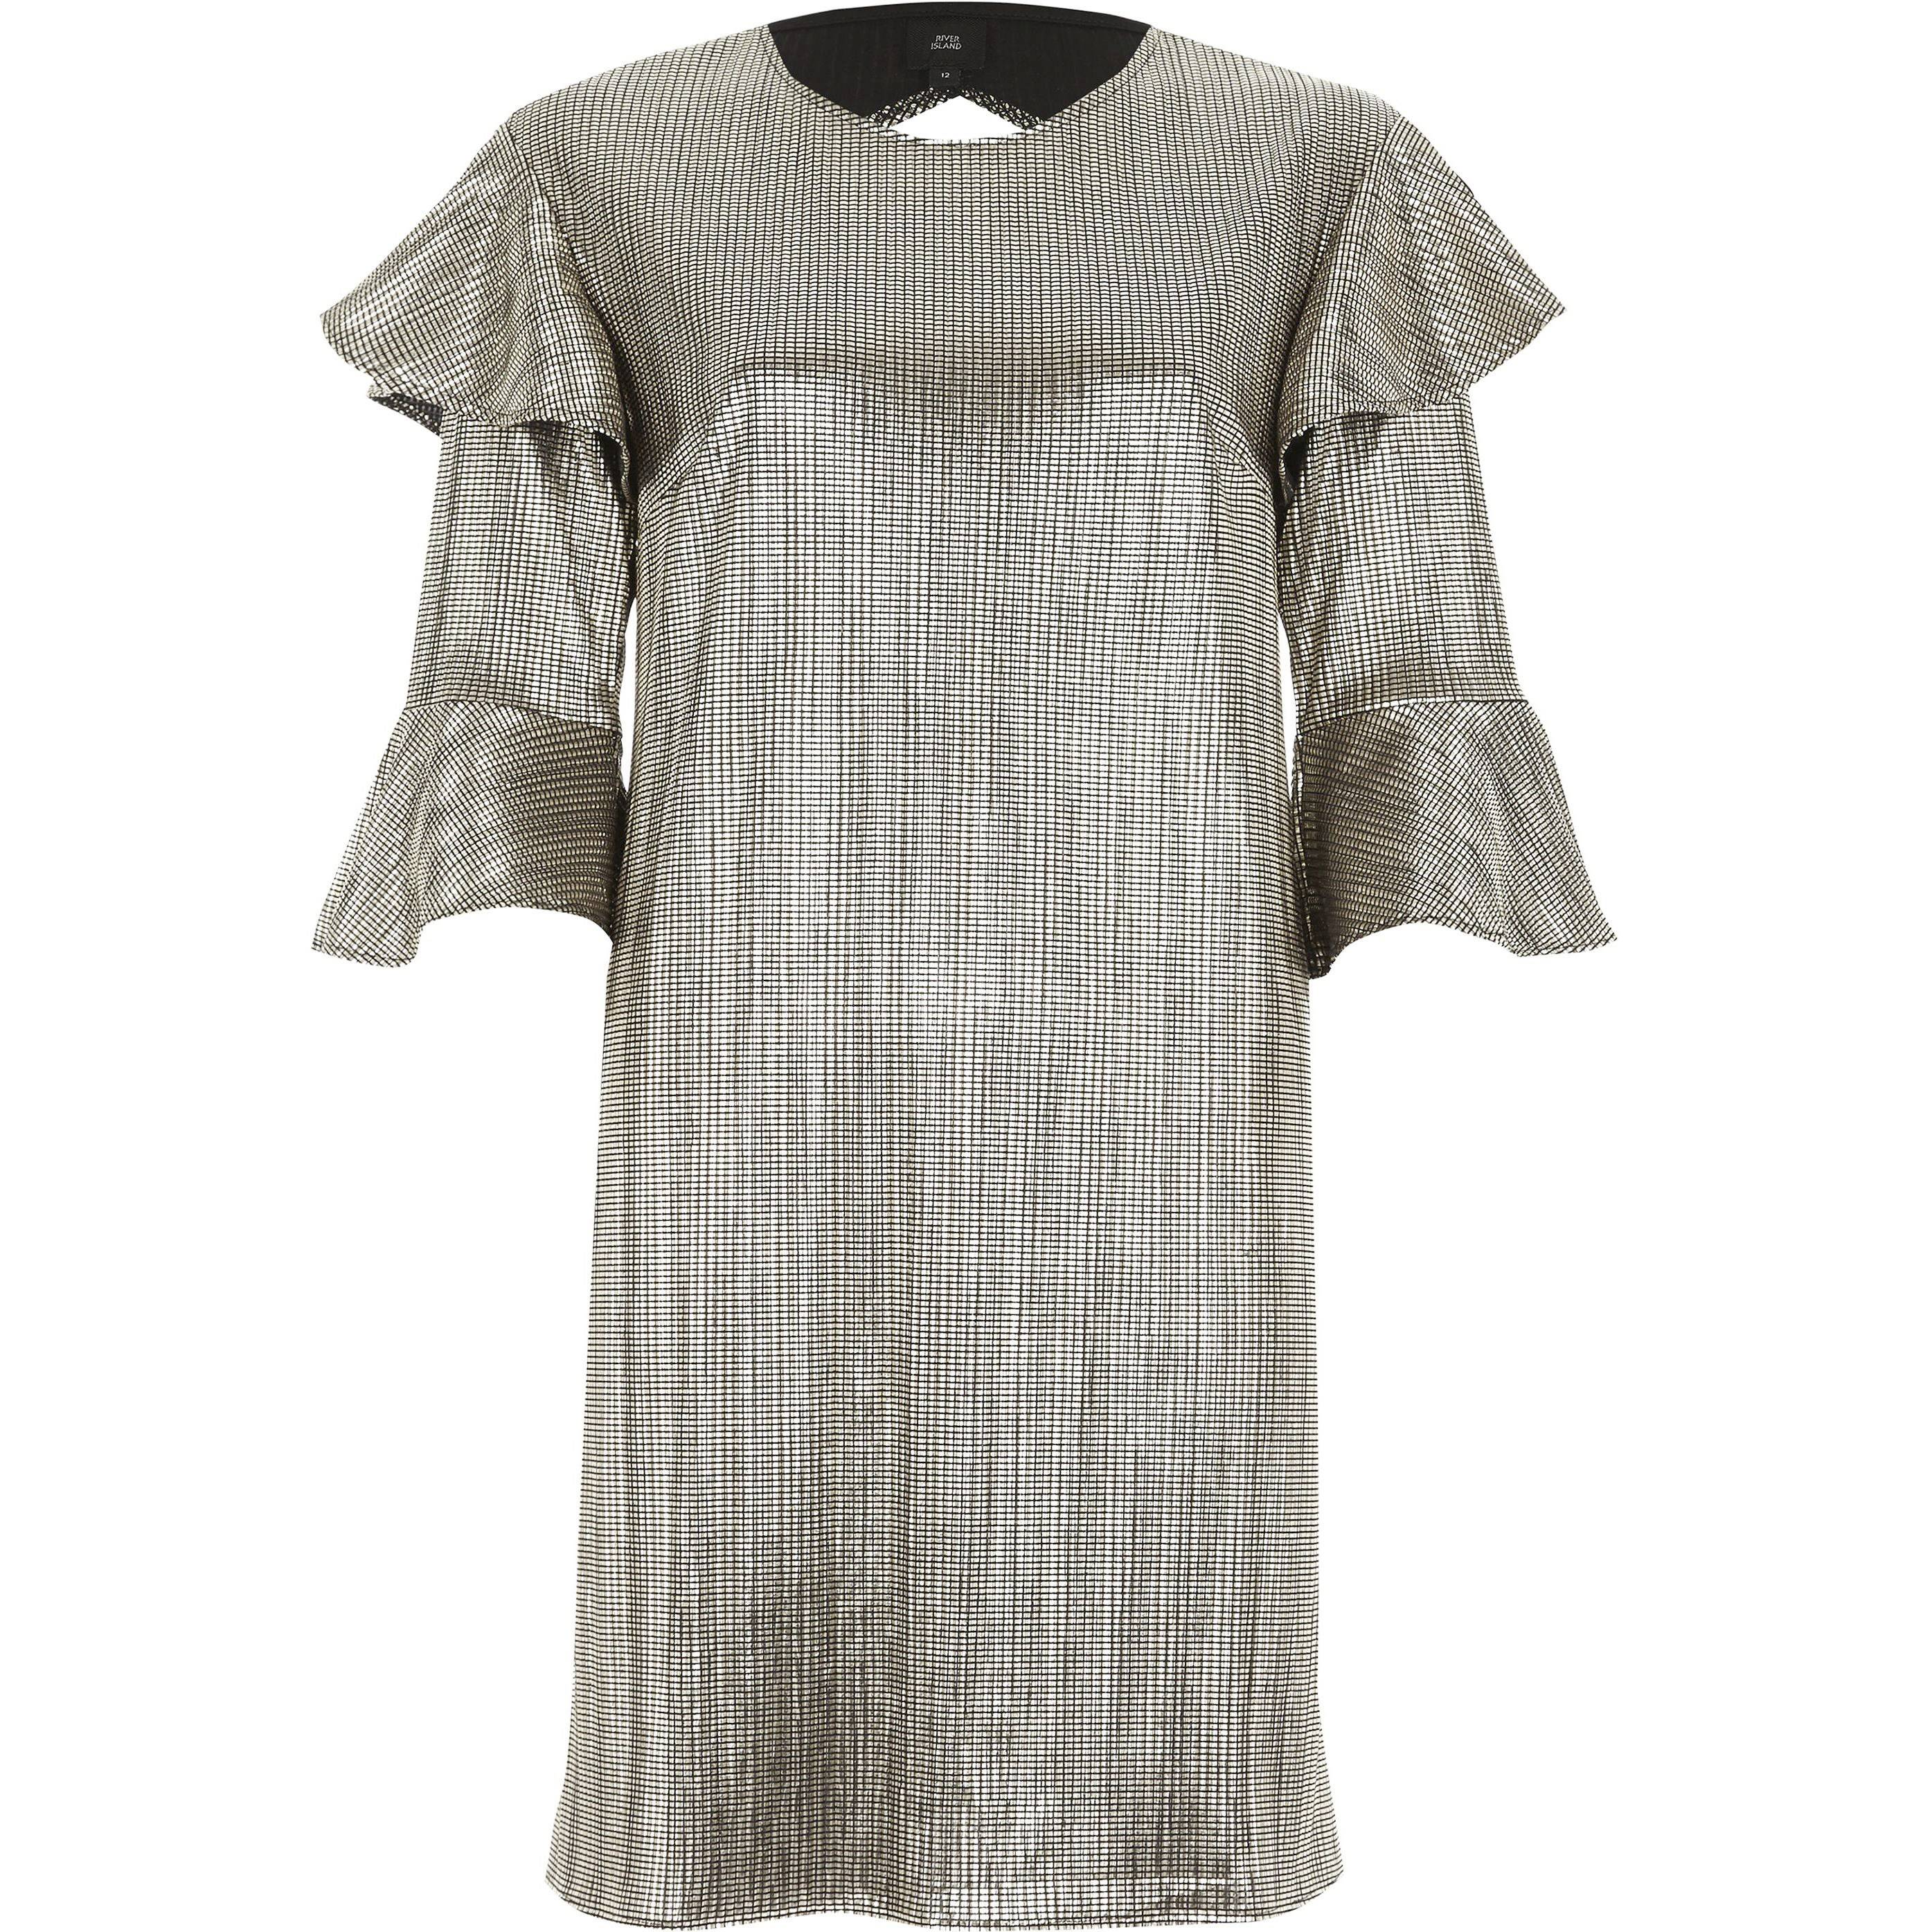 River Island Womens Gold foil frill T-shirt dress (6)